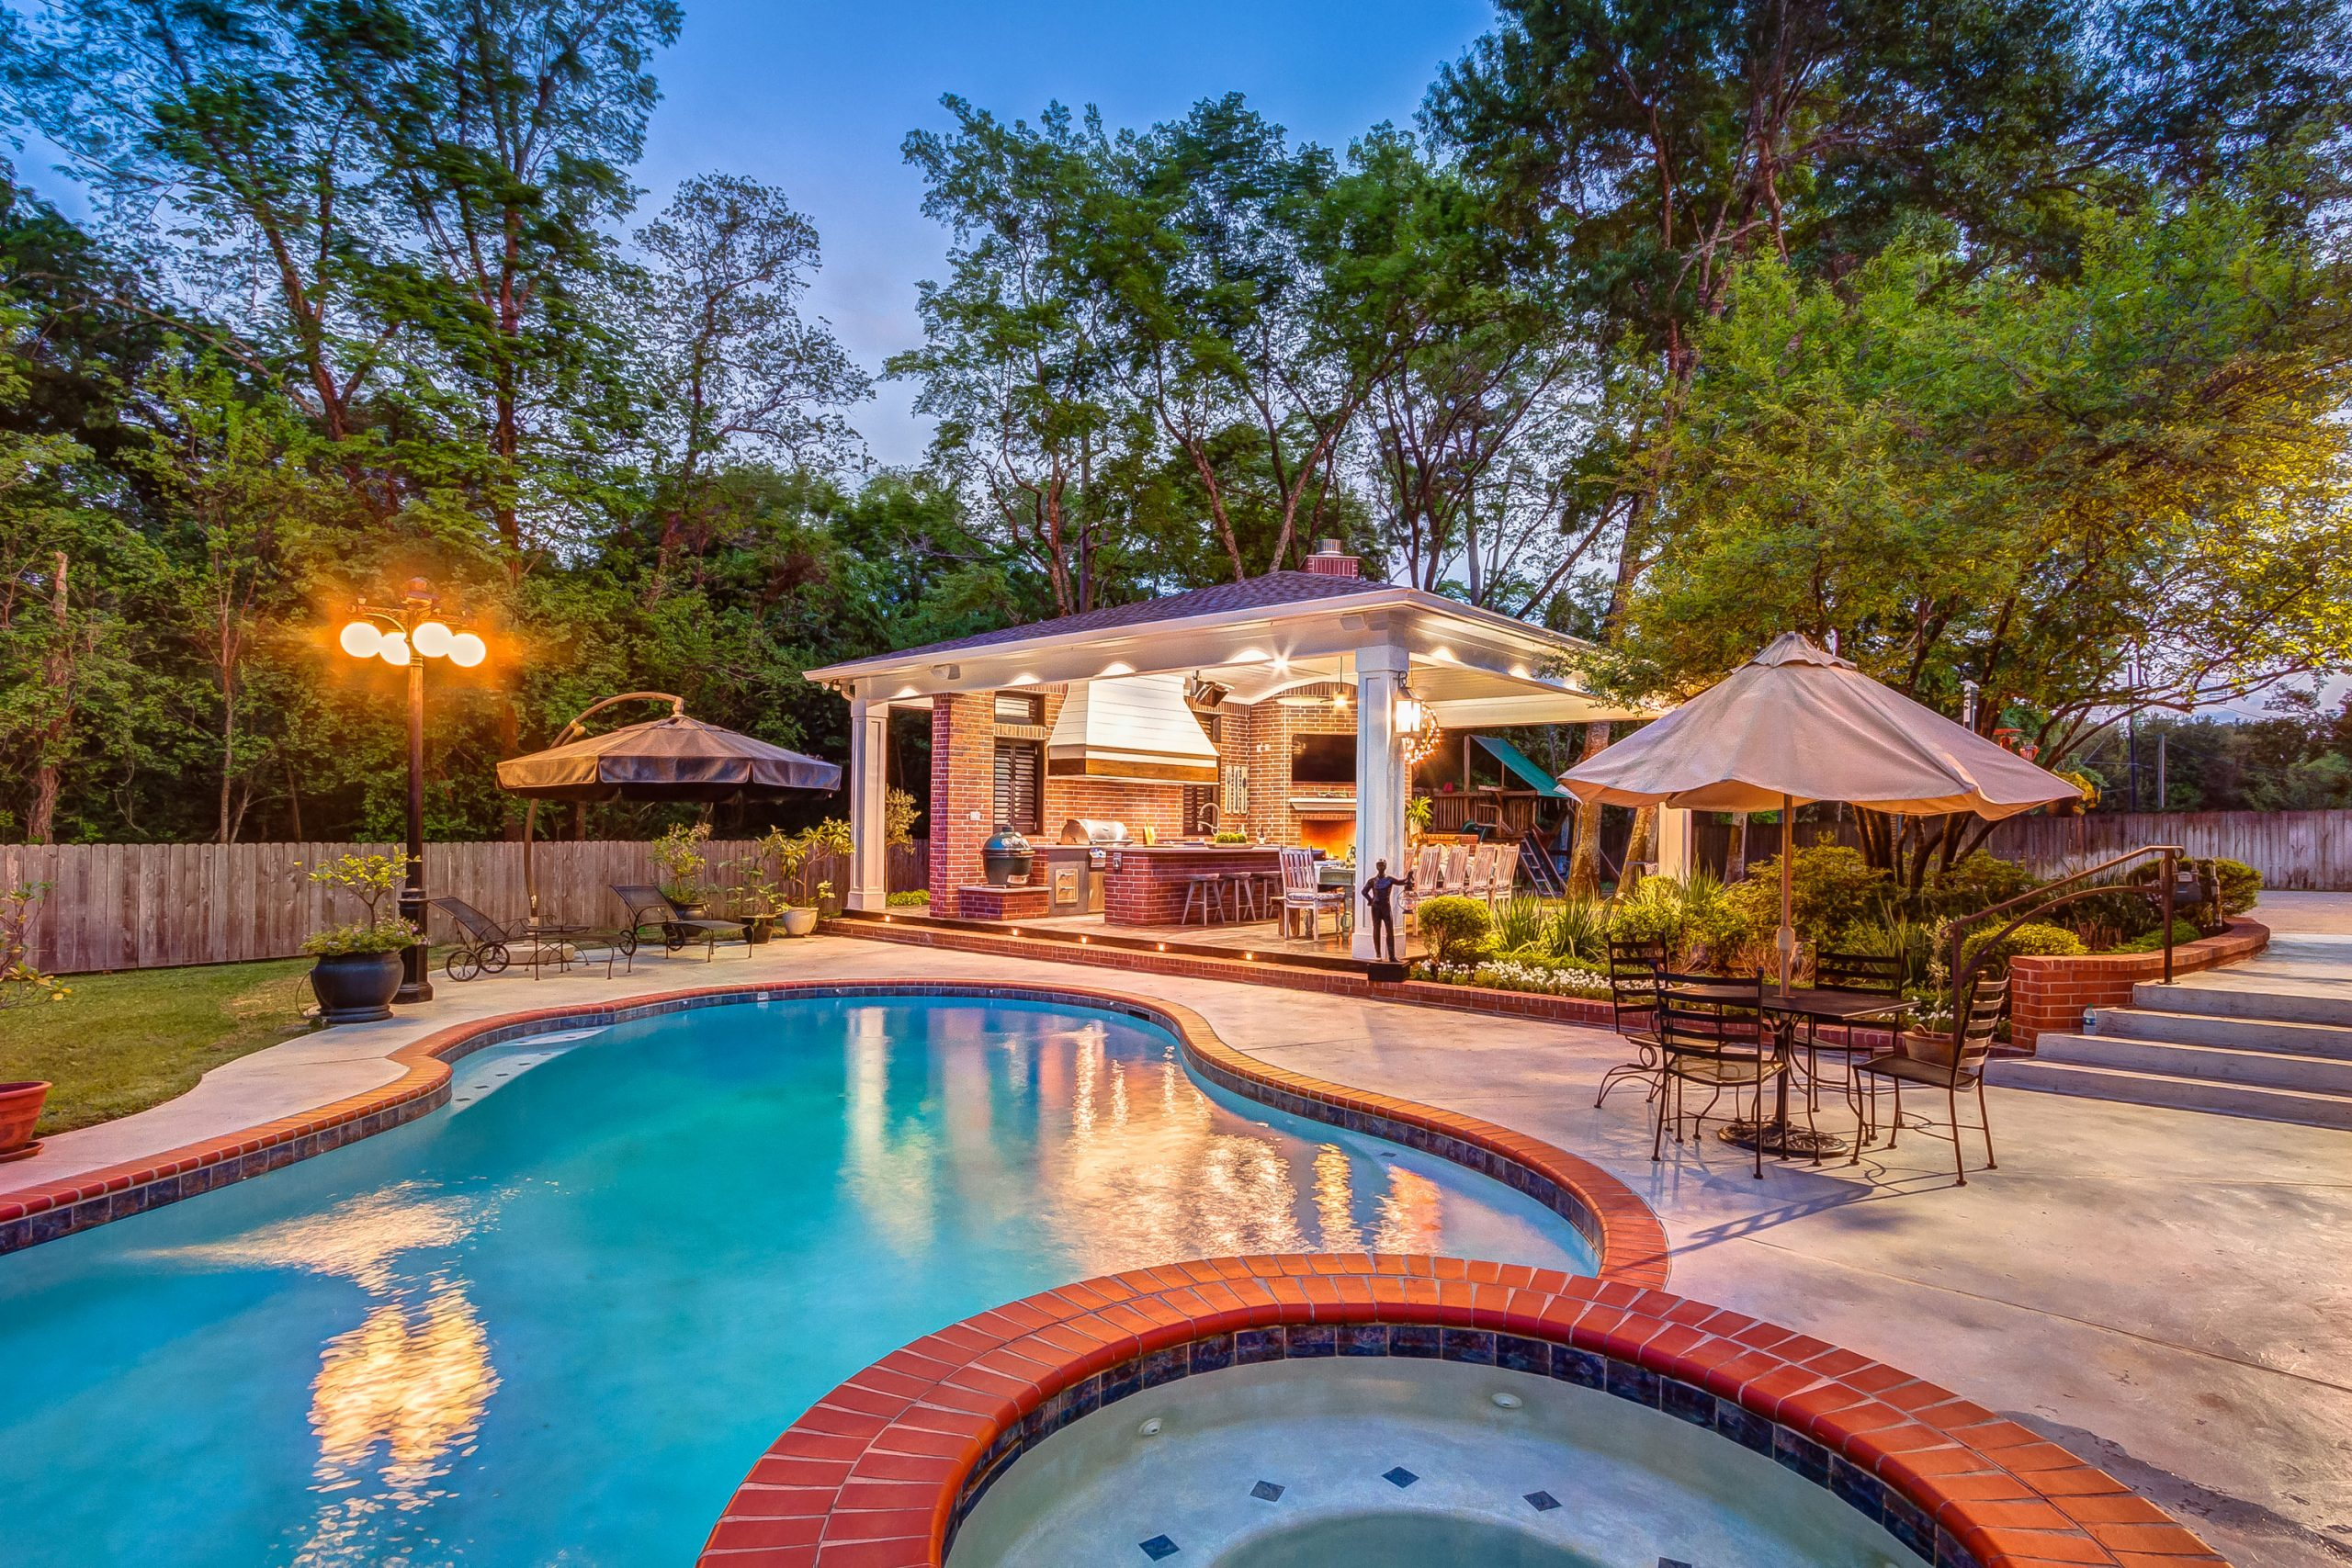 How to Choose the Best Houston Swimming Pool Builders, Creekstone Outdoor Living, Houston